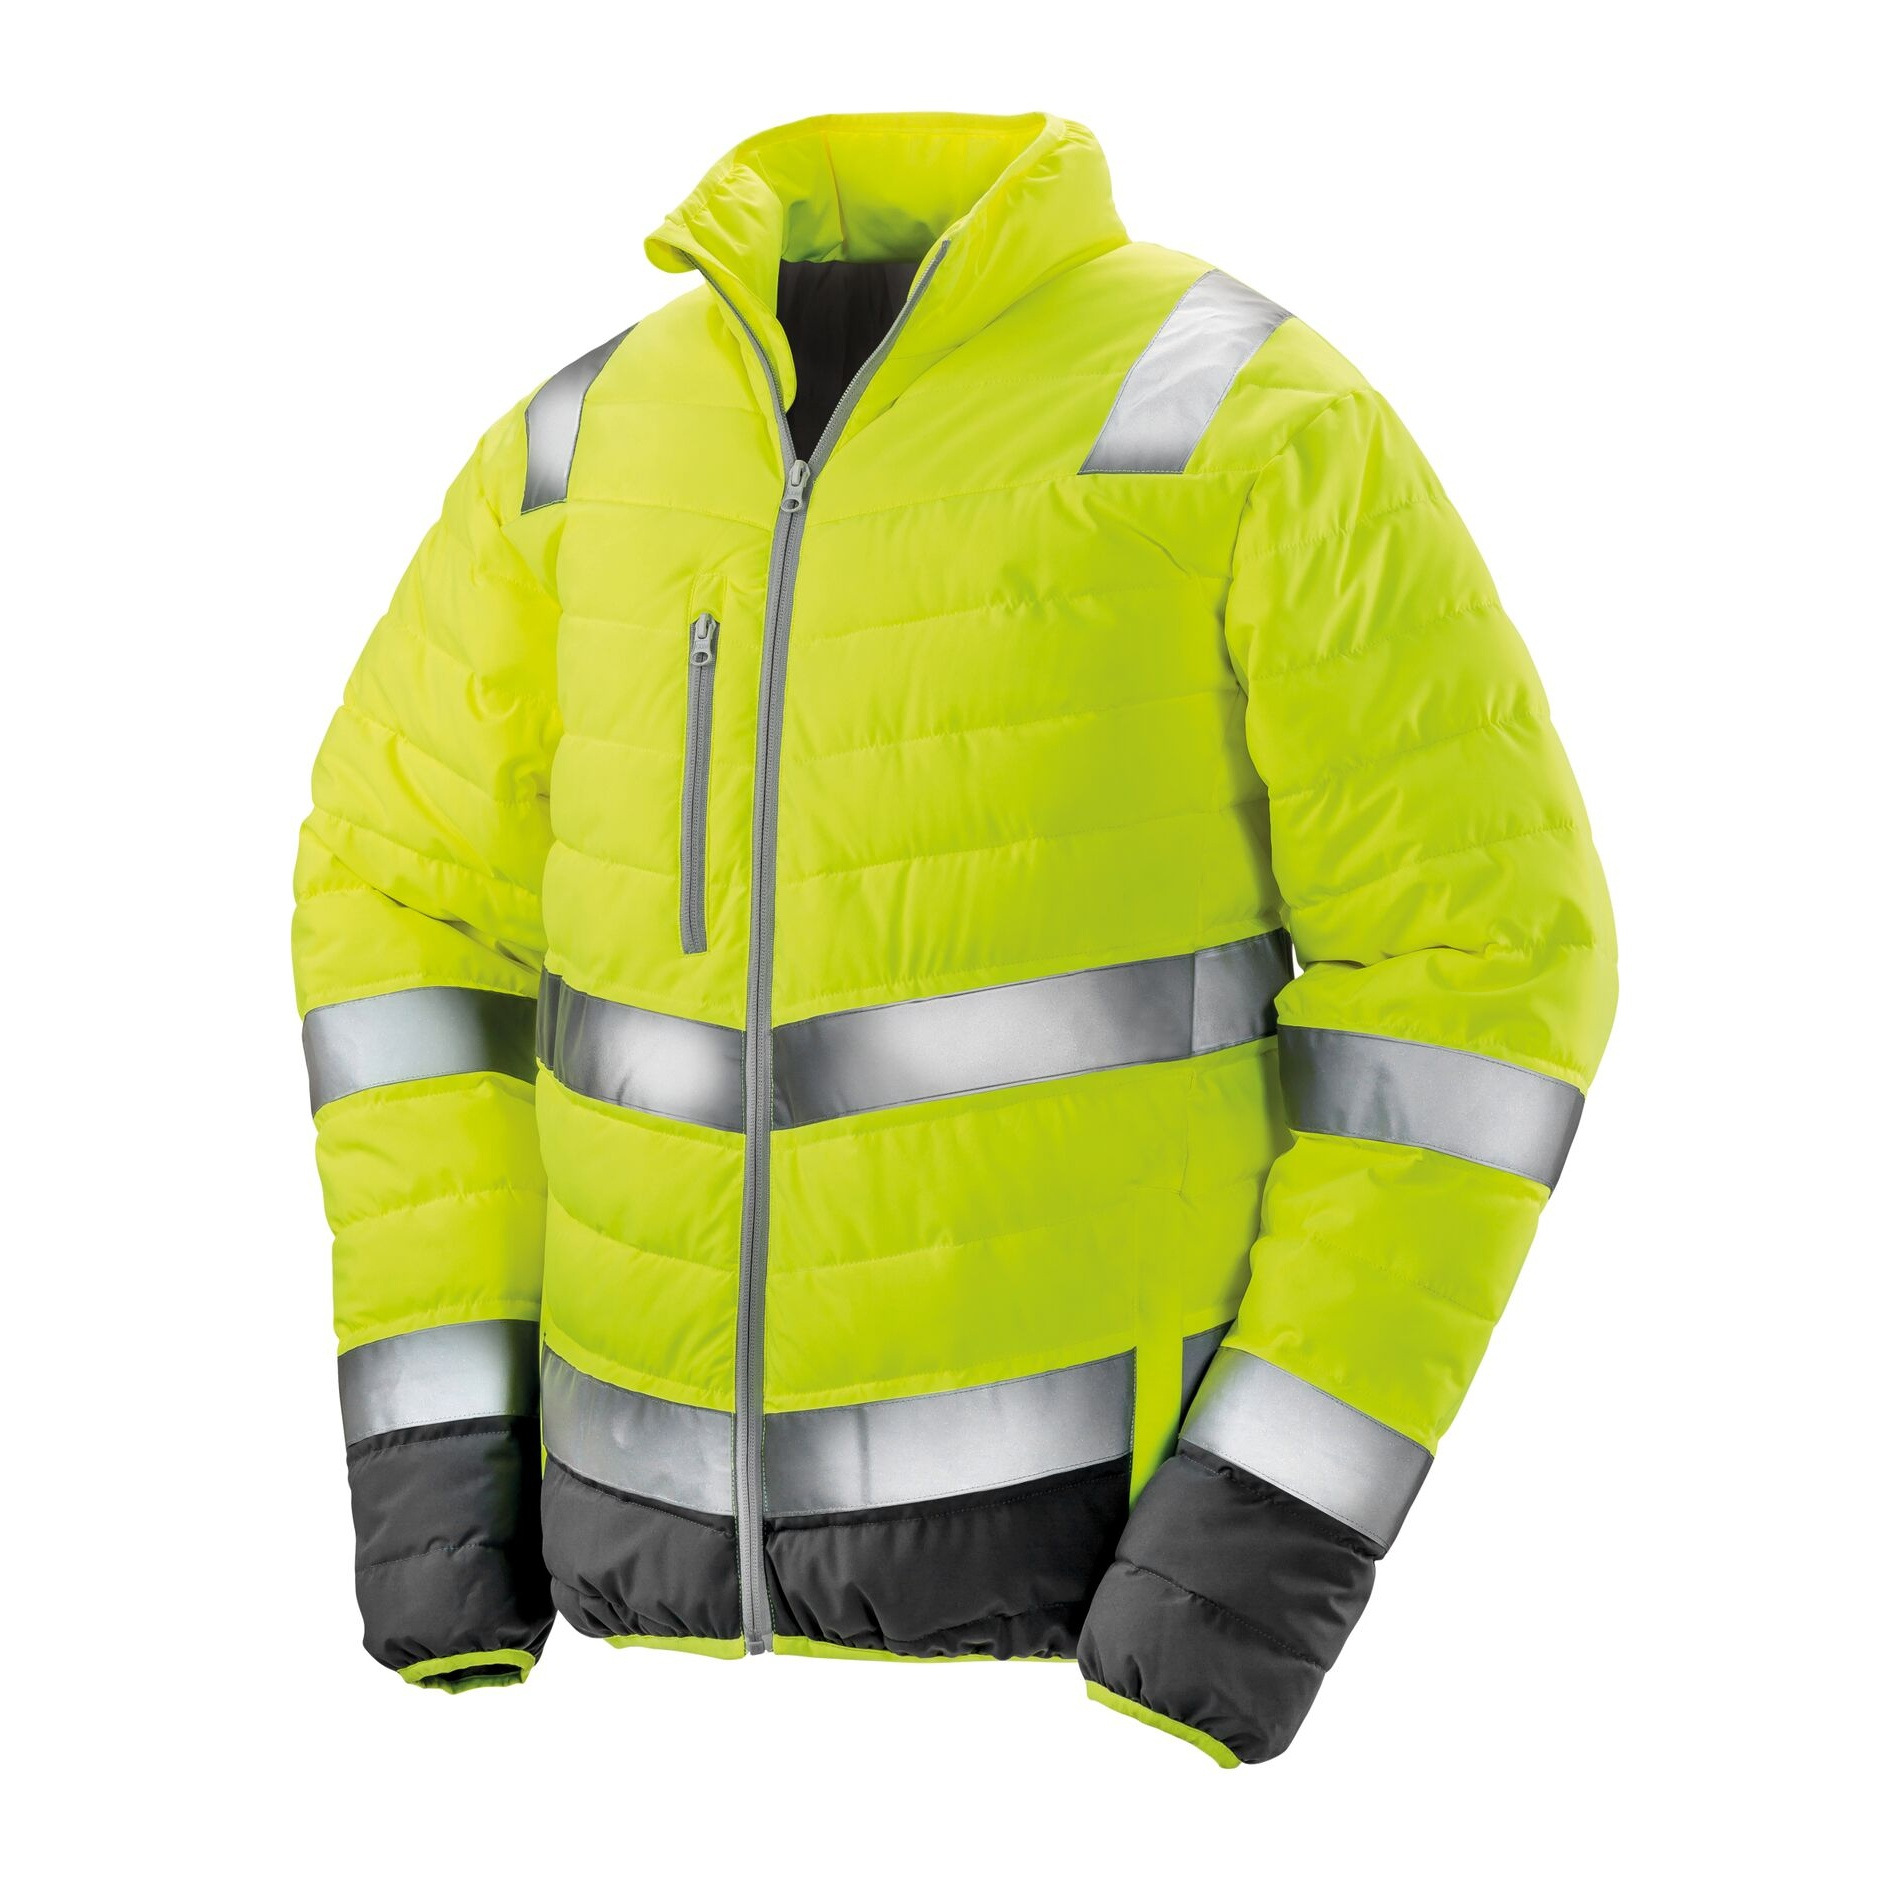 Result Safeguard Mens Soft Padded Safety Jacket (S) (Fluorescent Yellow)